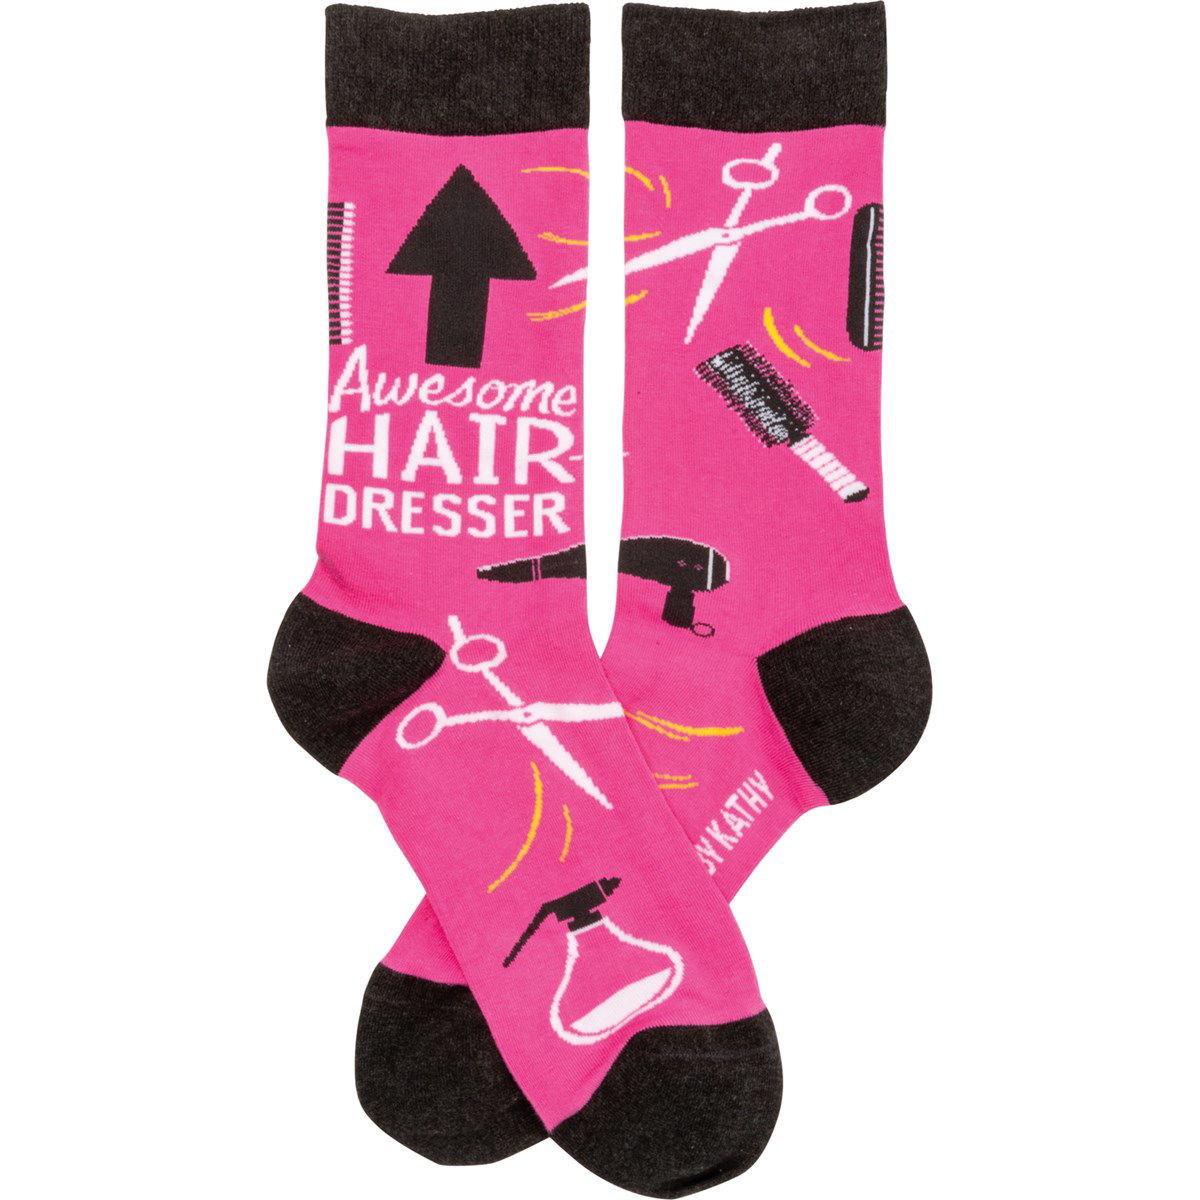 Awesome Hairdresser Socks by Primitives by Kathy